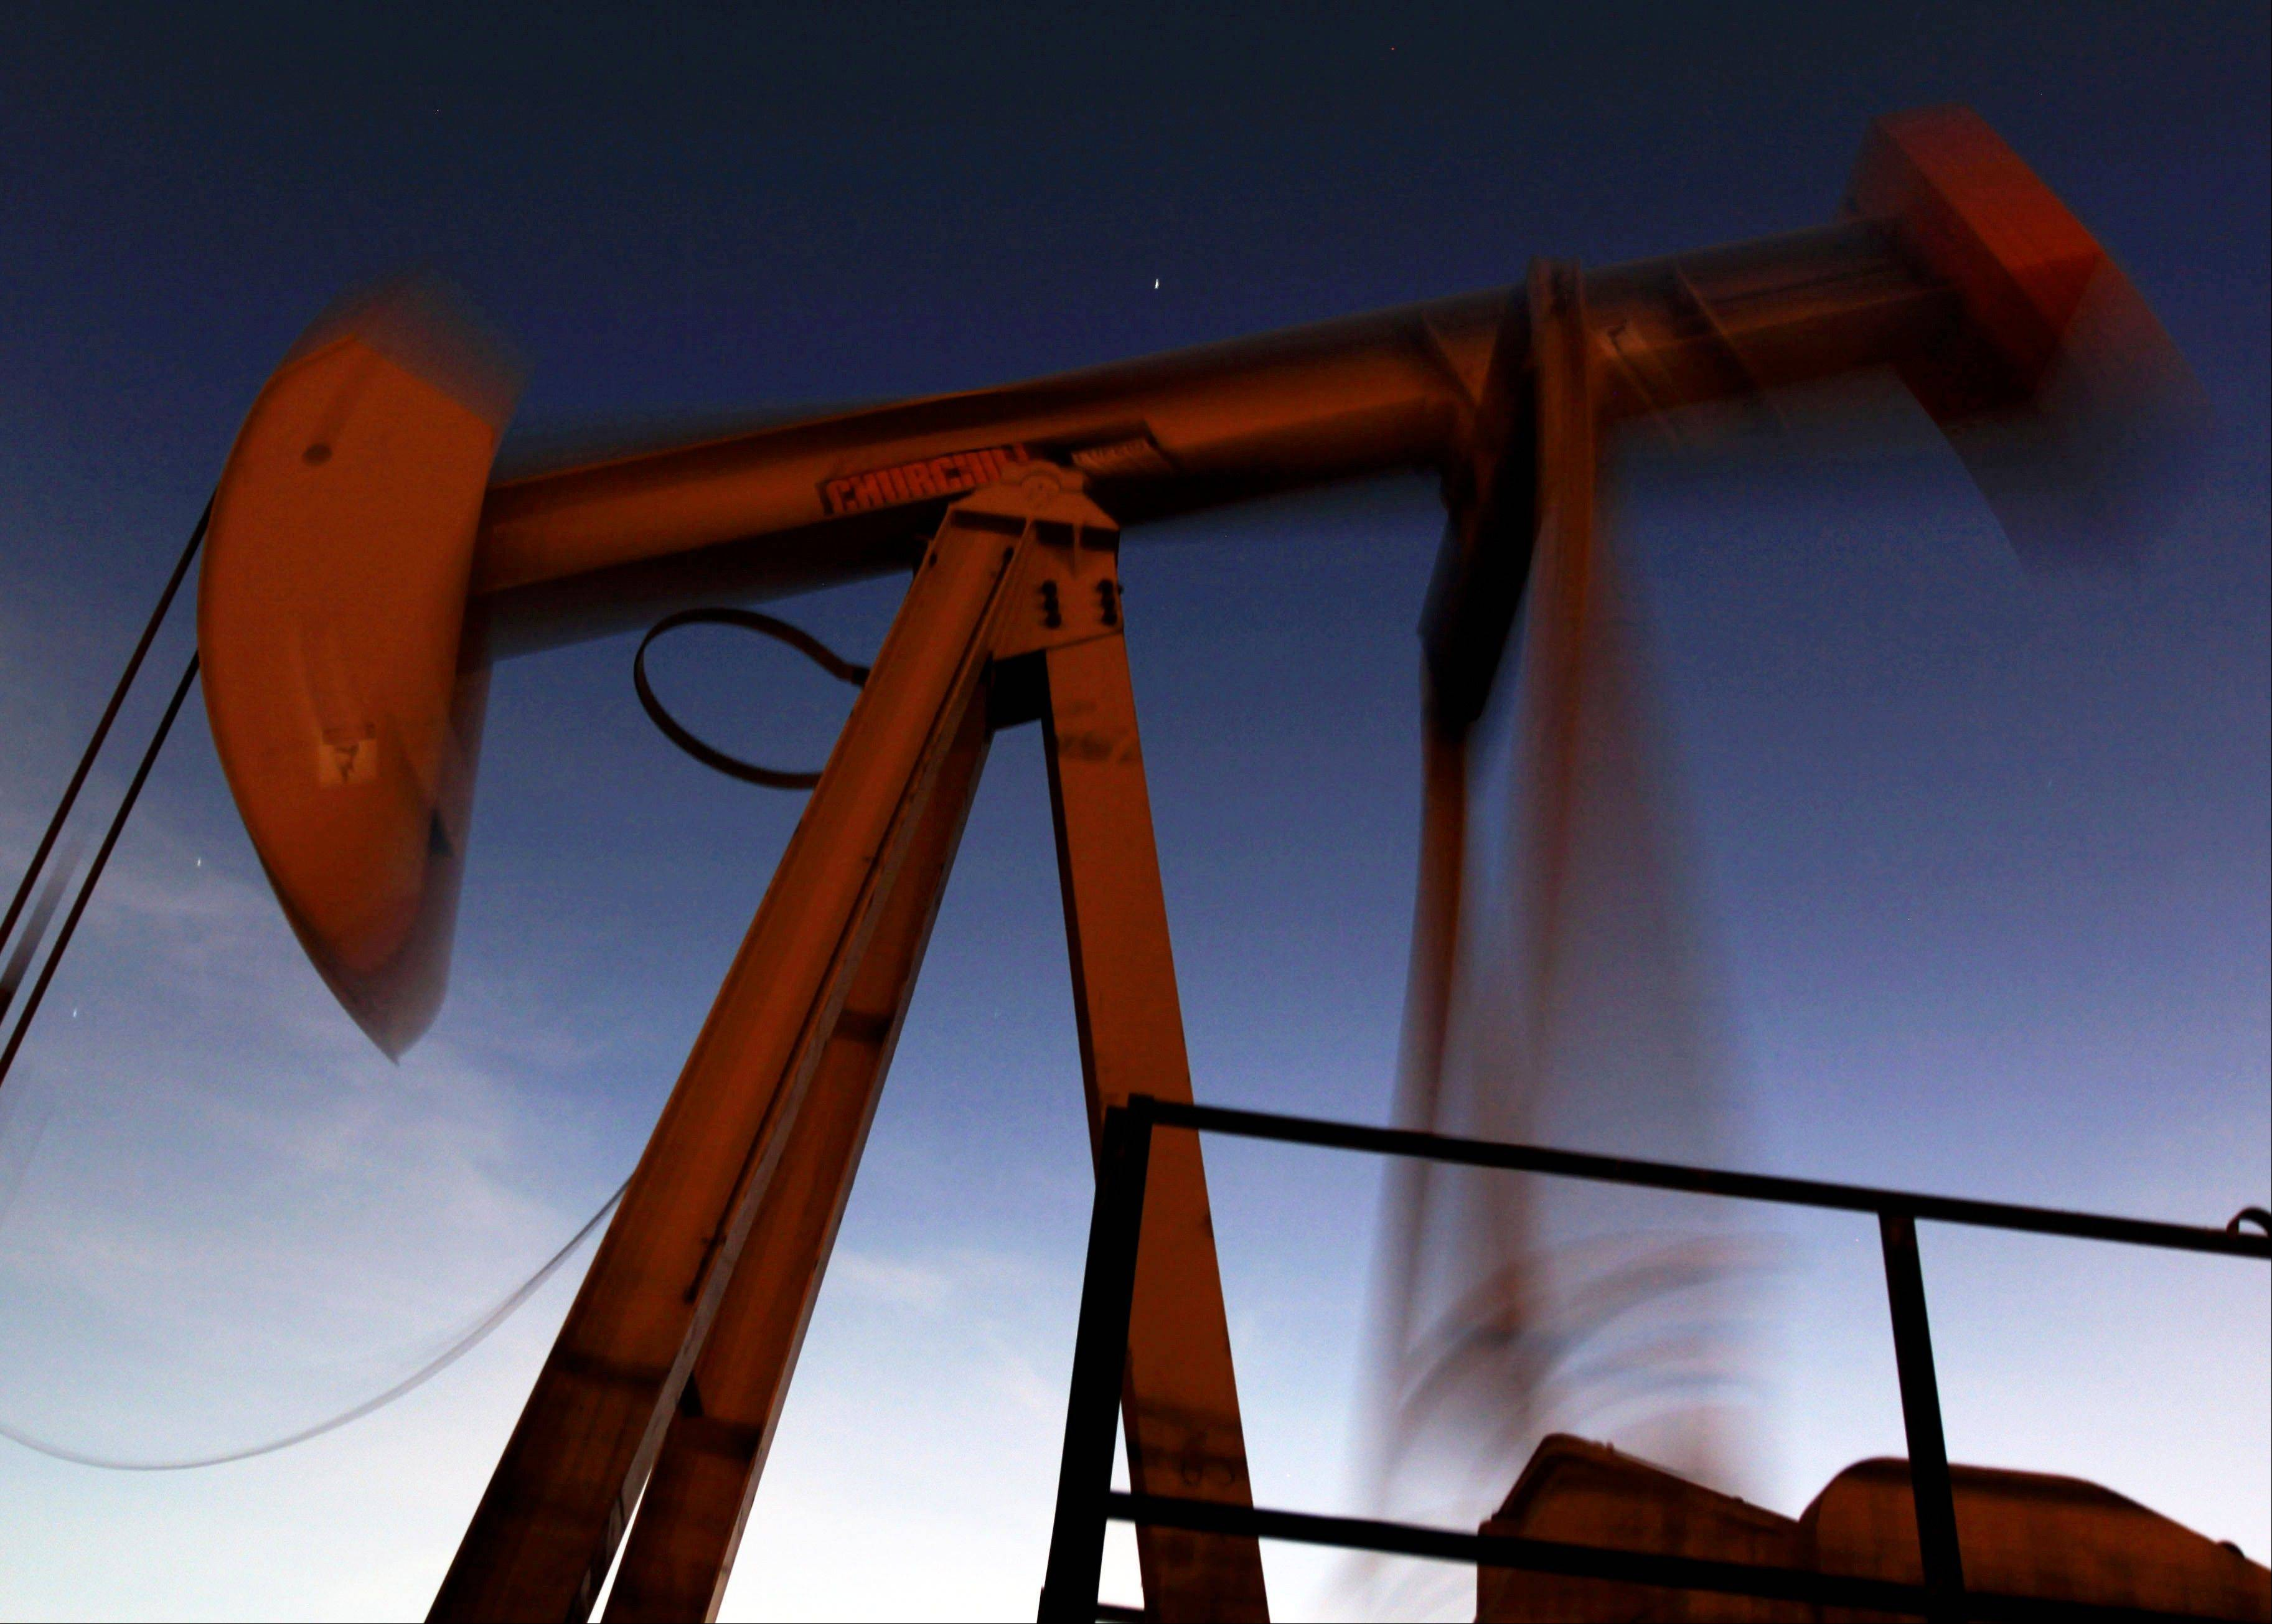 Crude prices fell Wednesday after finance ministers from the world's leading industrialized economies called on oil producers to increase output and said they stood ready to ask the International Energy Agency to release strategic reserves.